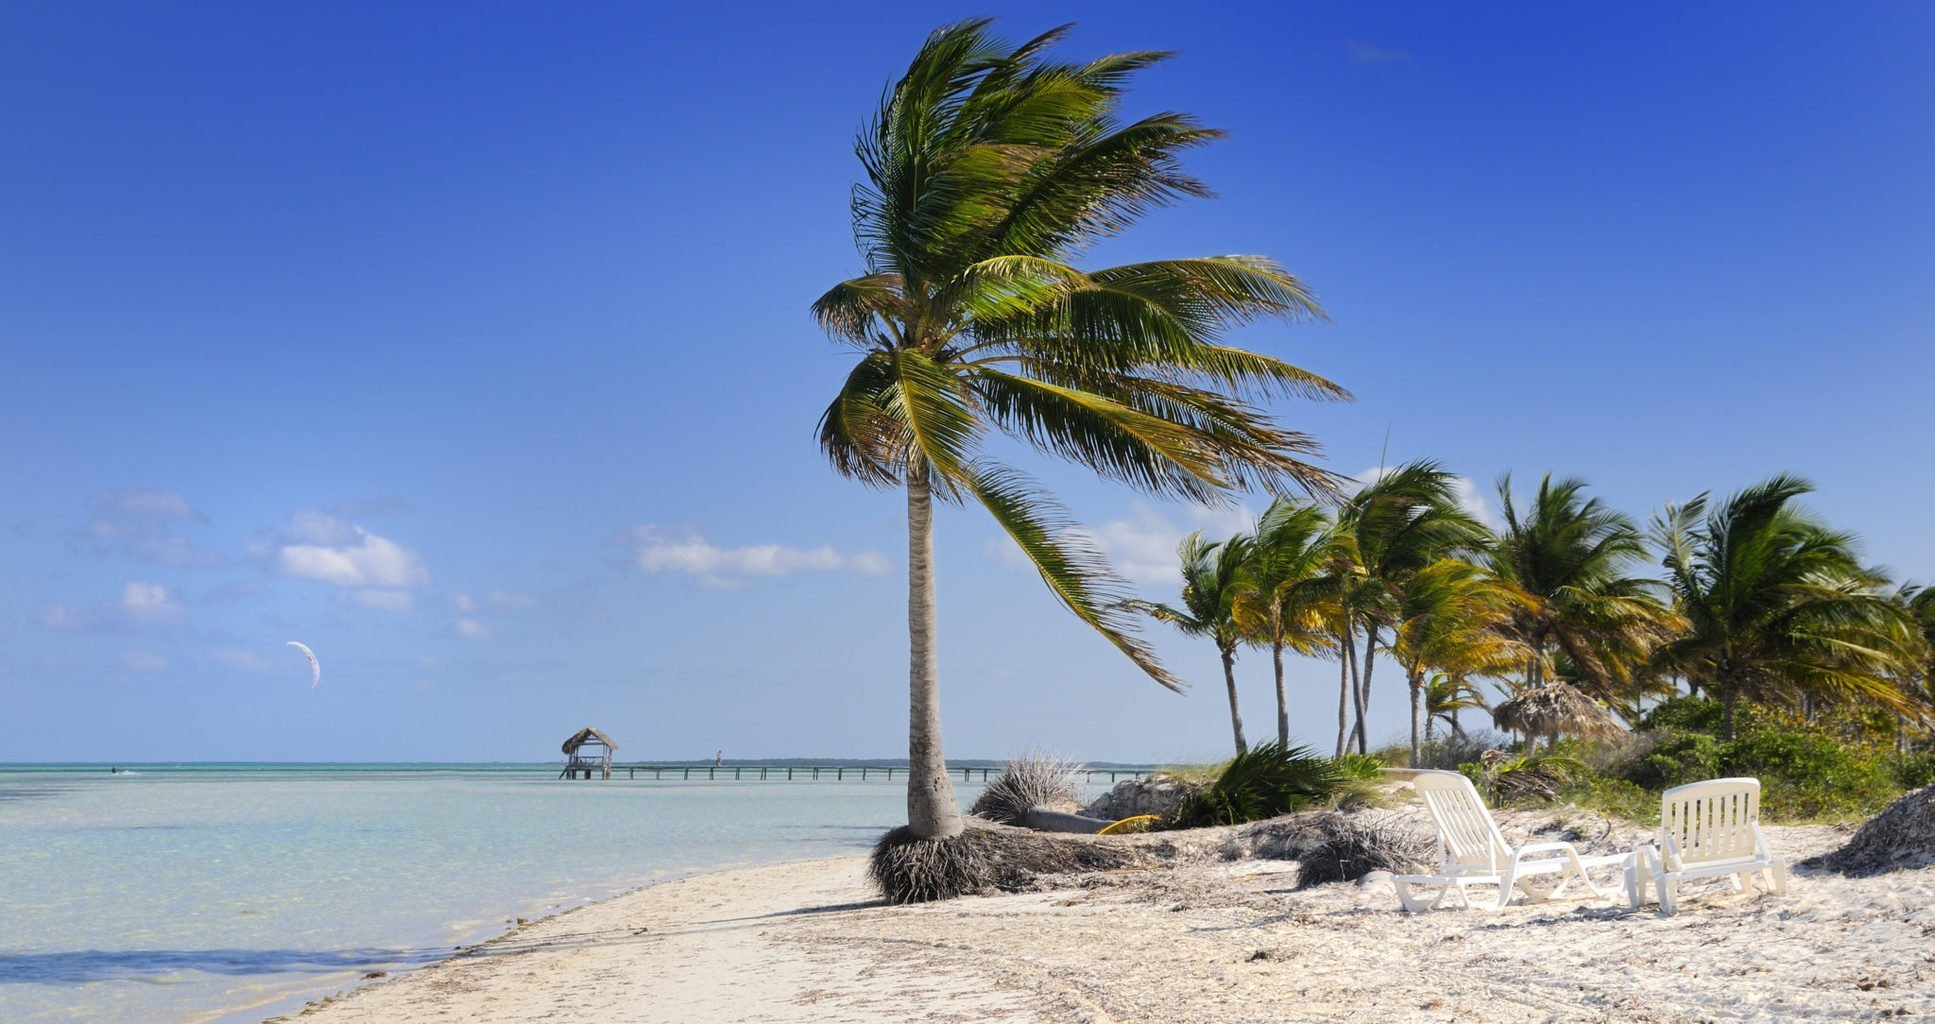 trees blowing in the wind on the beach in cuba